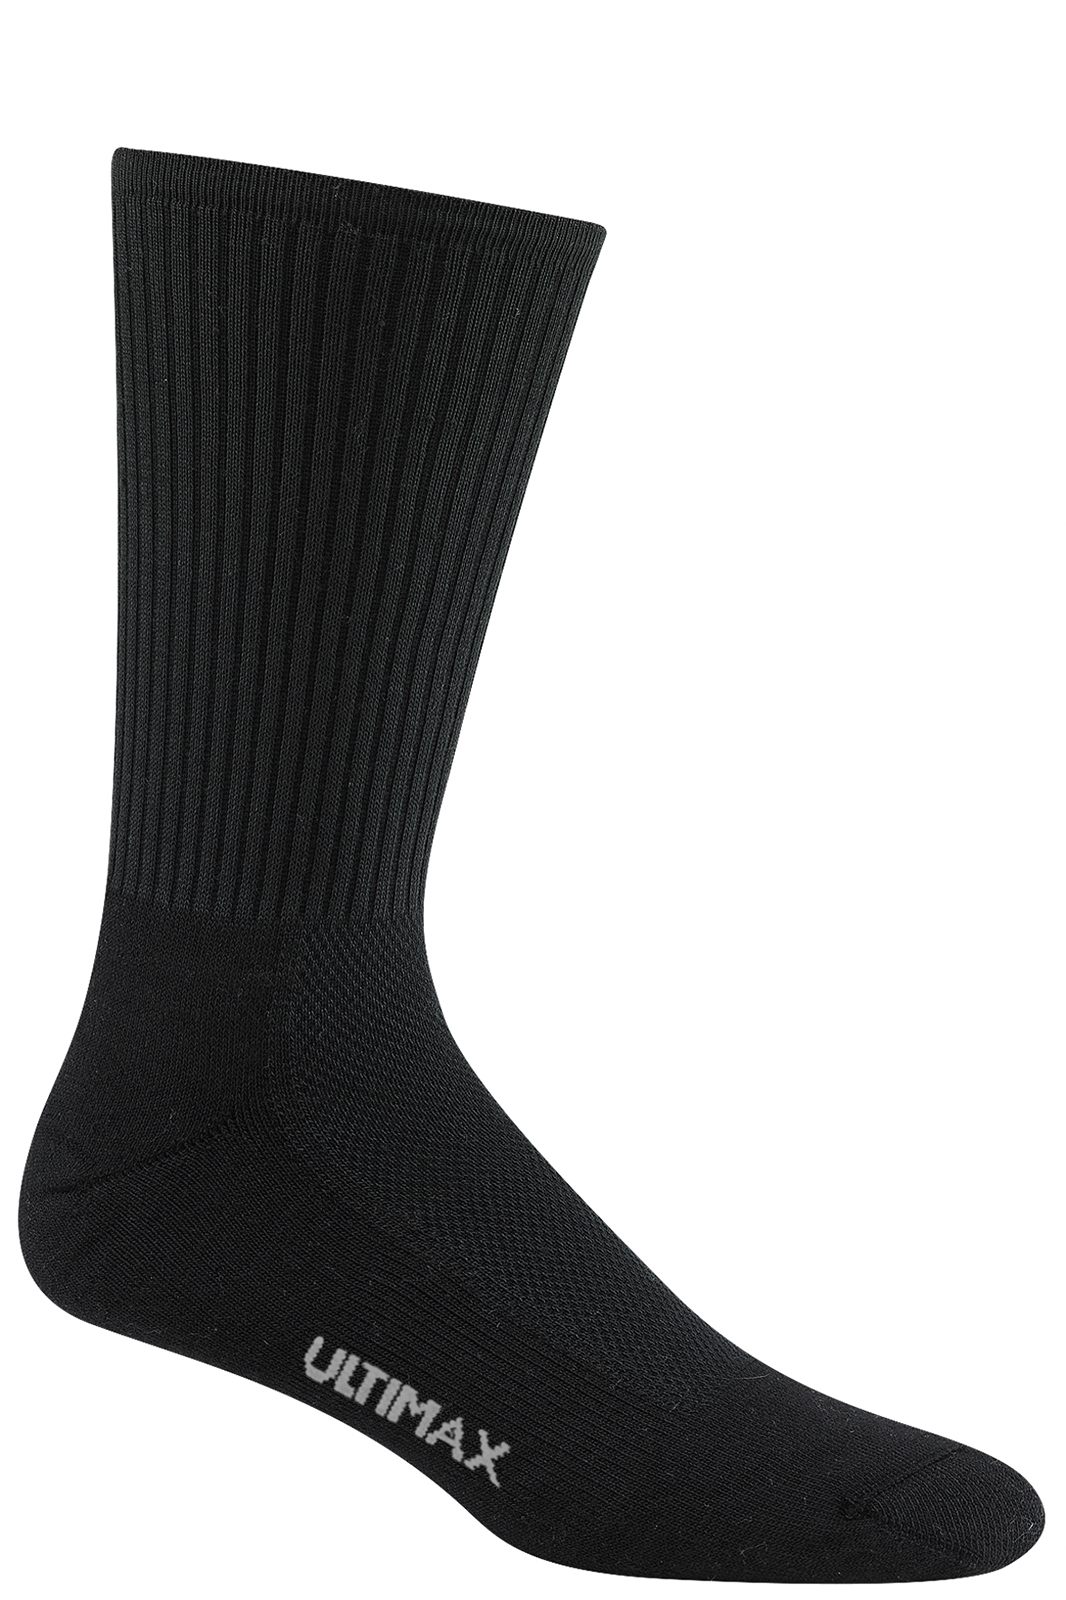 Moisture Wicking Socks